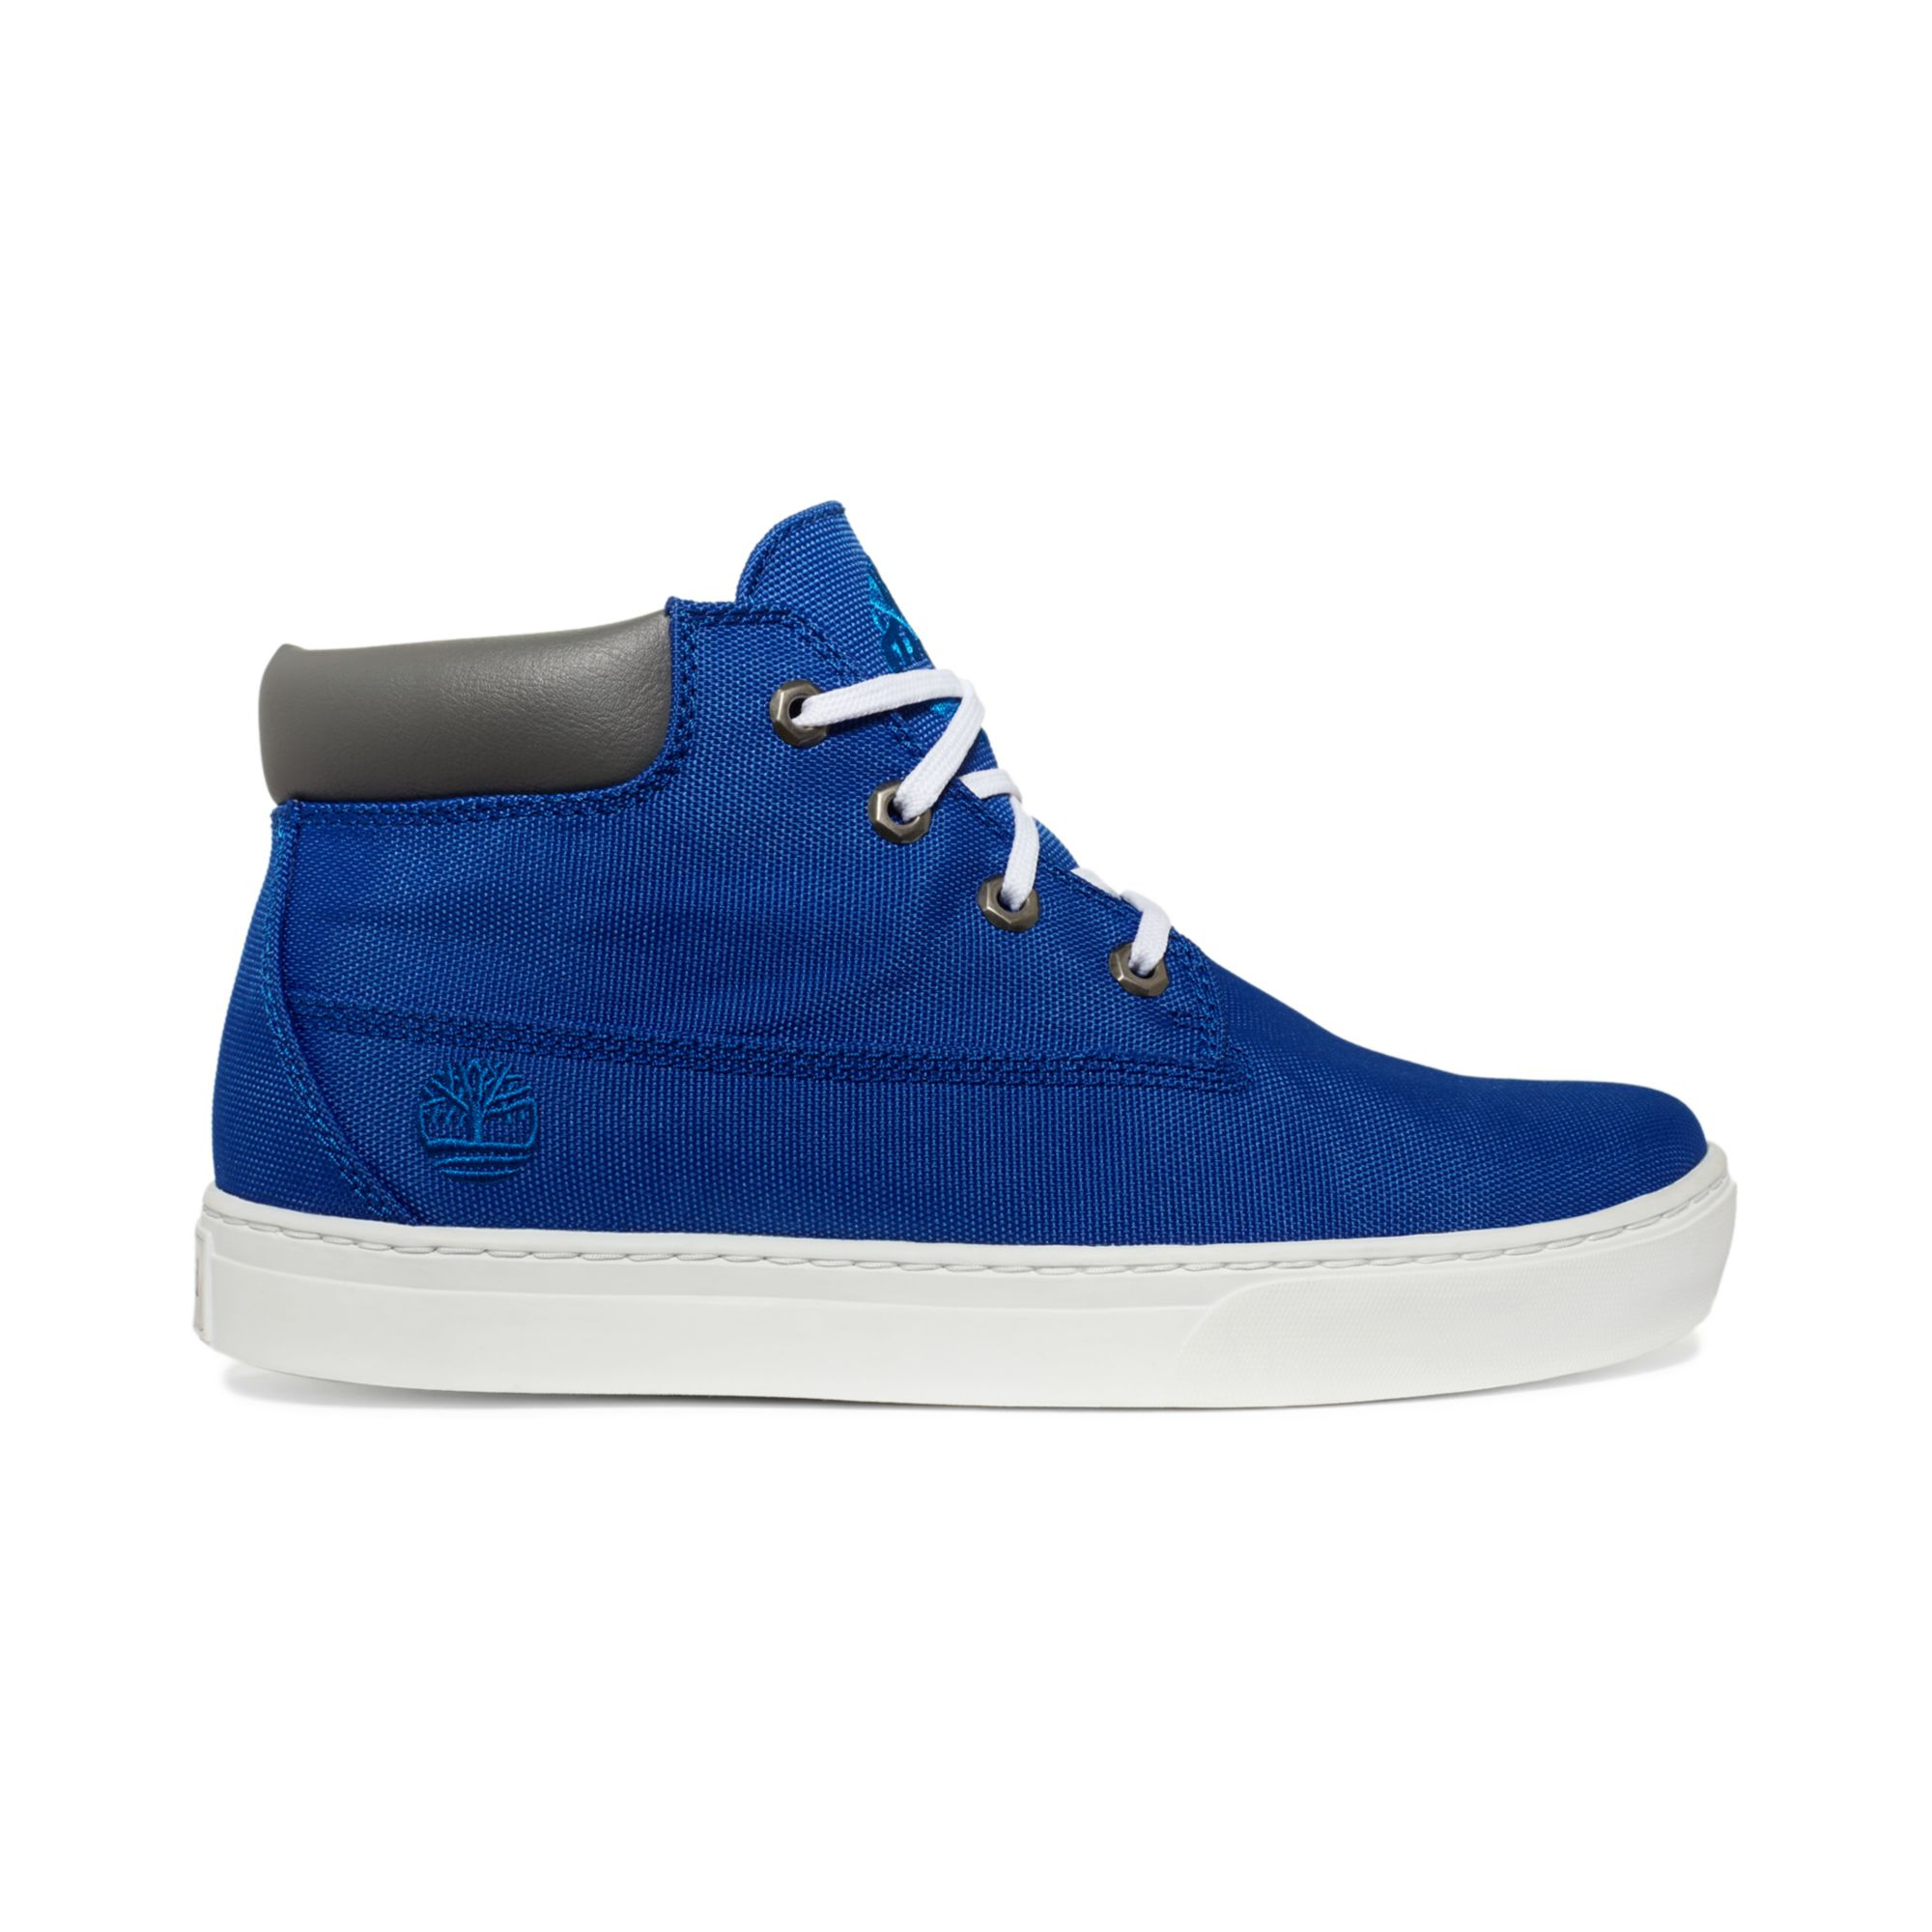 Lyst Timberland 20 New Market Chukka Boots In Blue For Men